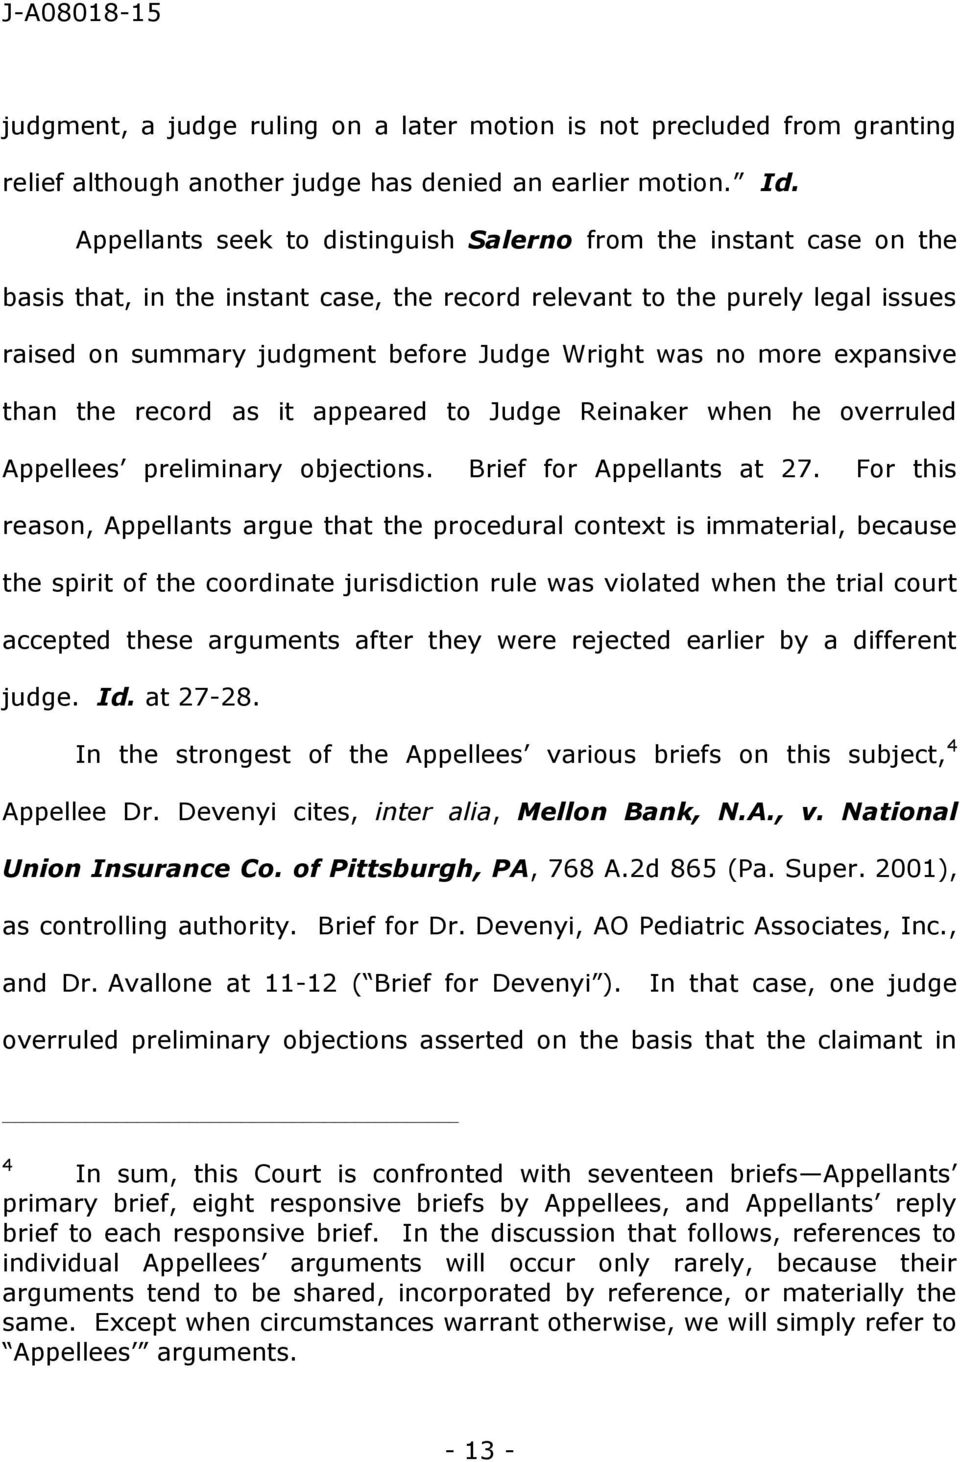 no more expansive than the record as it appeared to Judge Reinaker when he overruled Appellees preliminary objections. Brief for Appellants at 27.